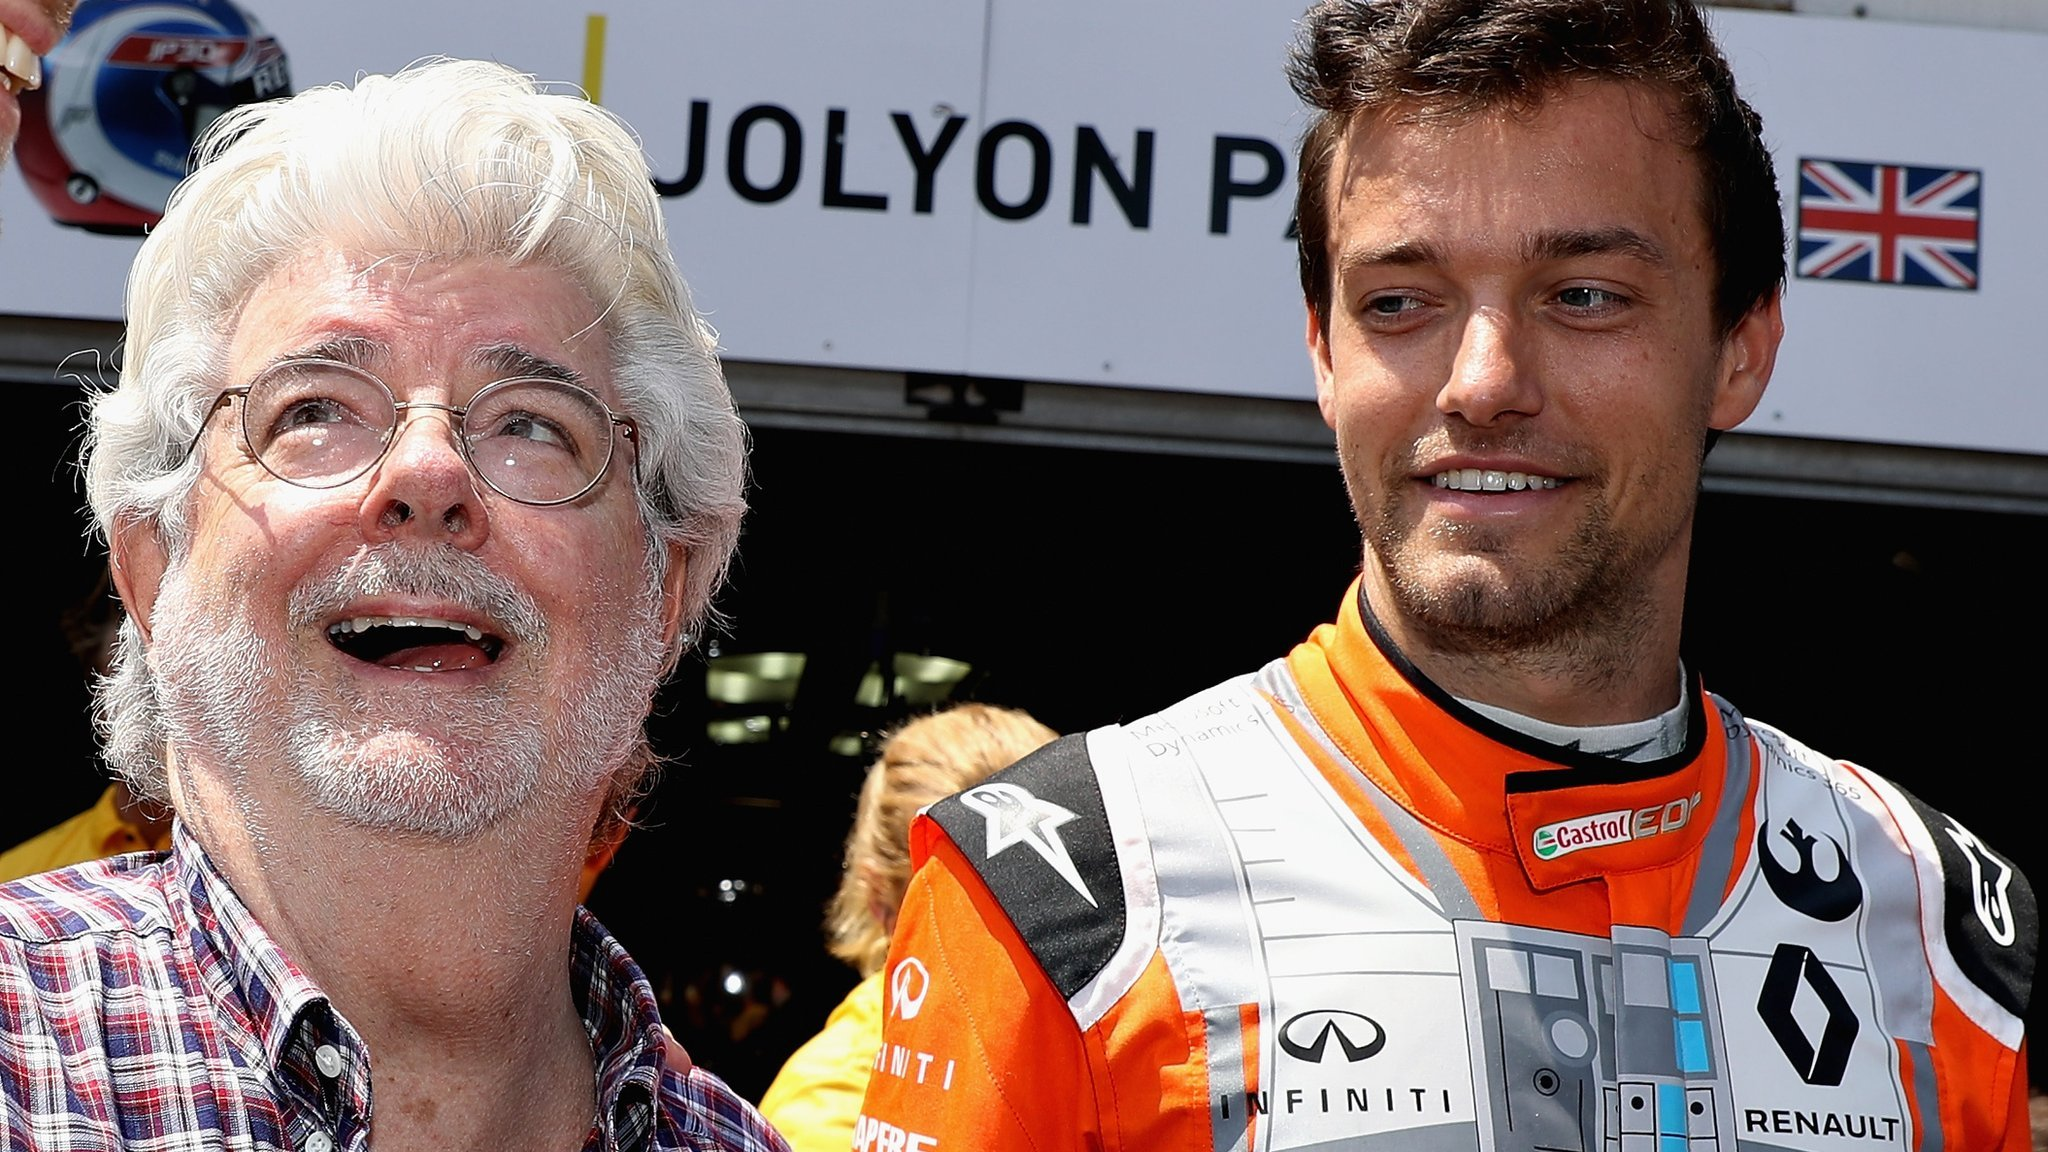 'If you created this circuit now, they'd laugh at you' - Palmer on the 'madness' of Monaco